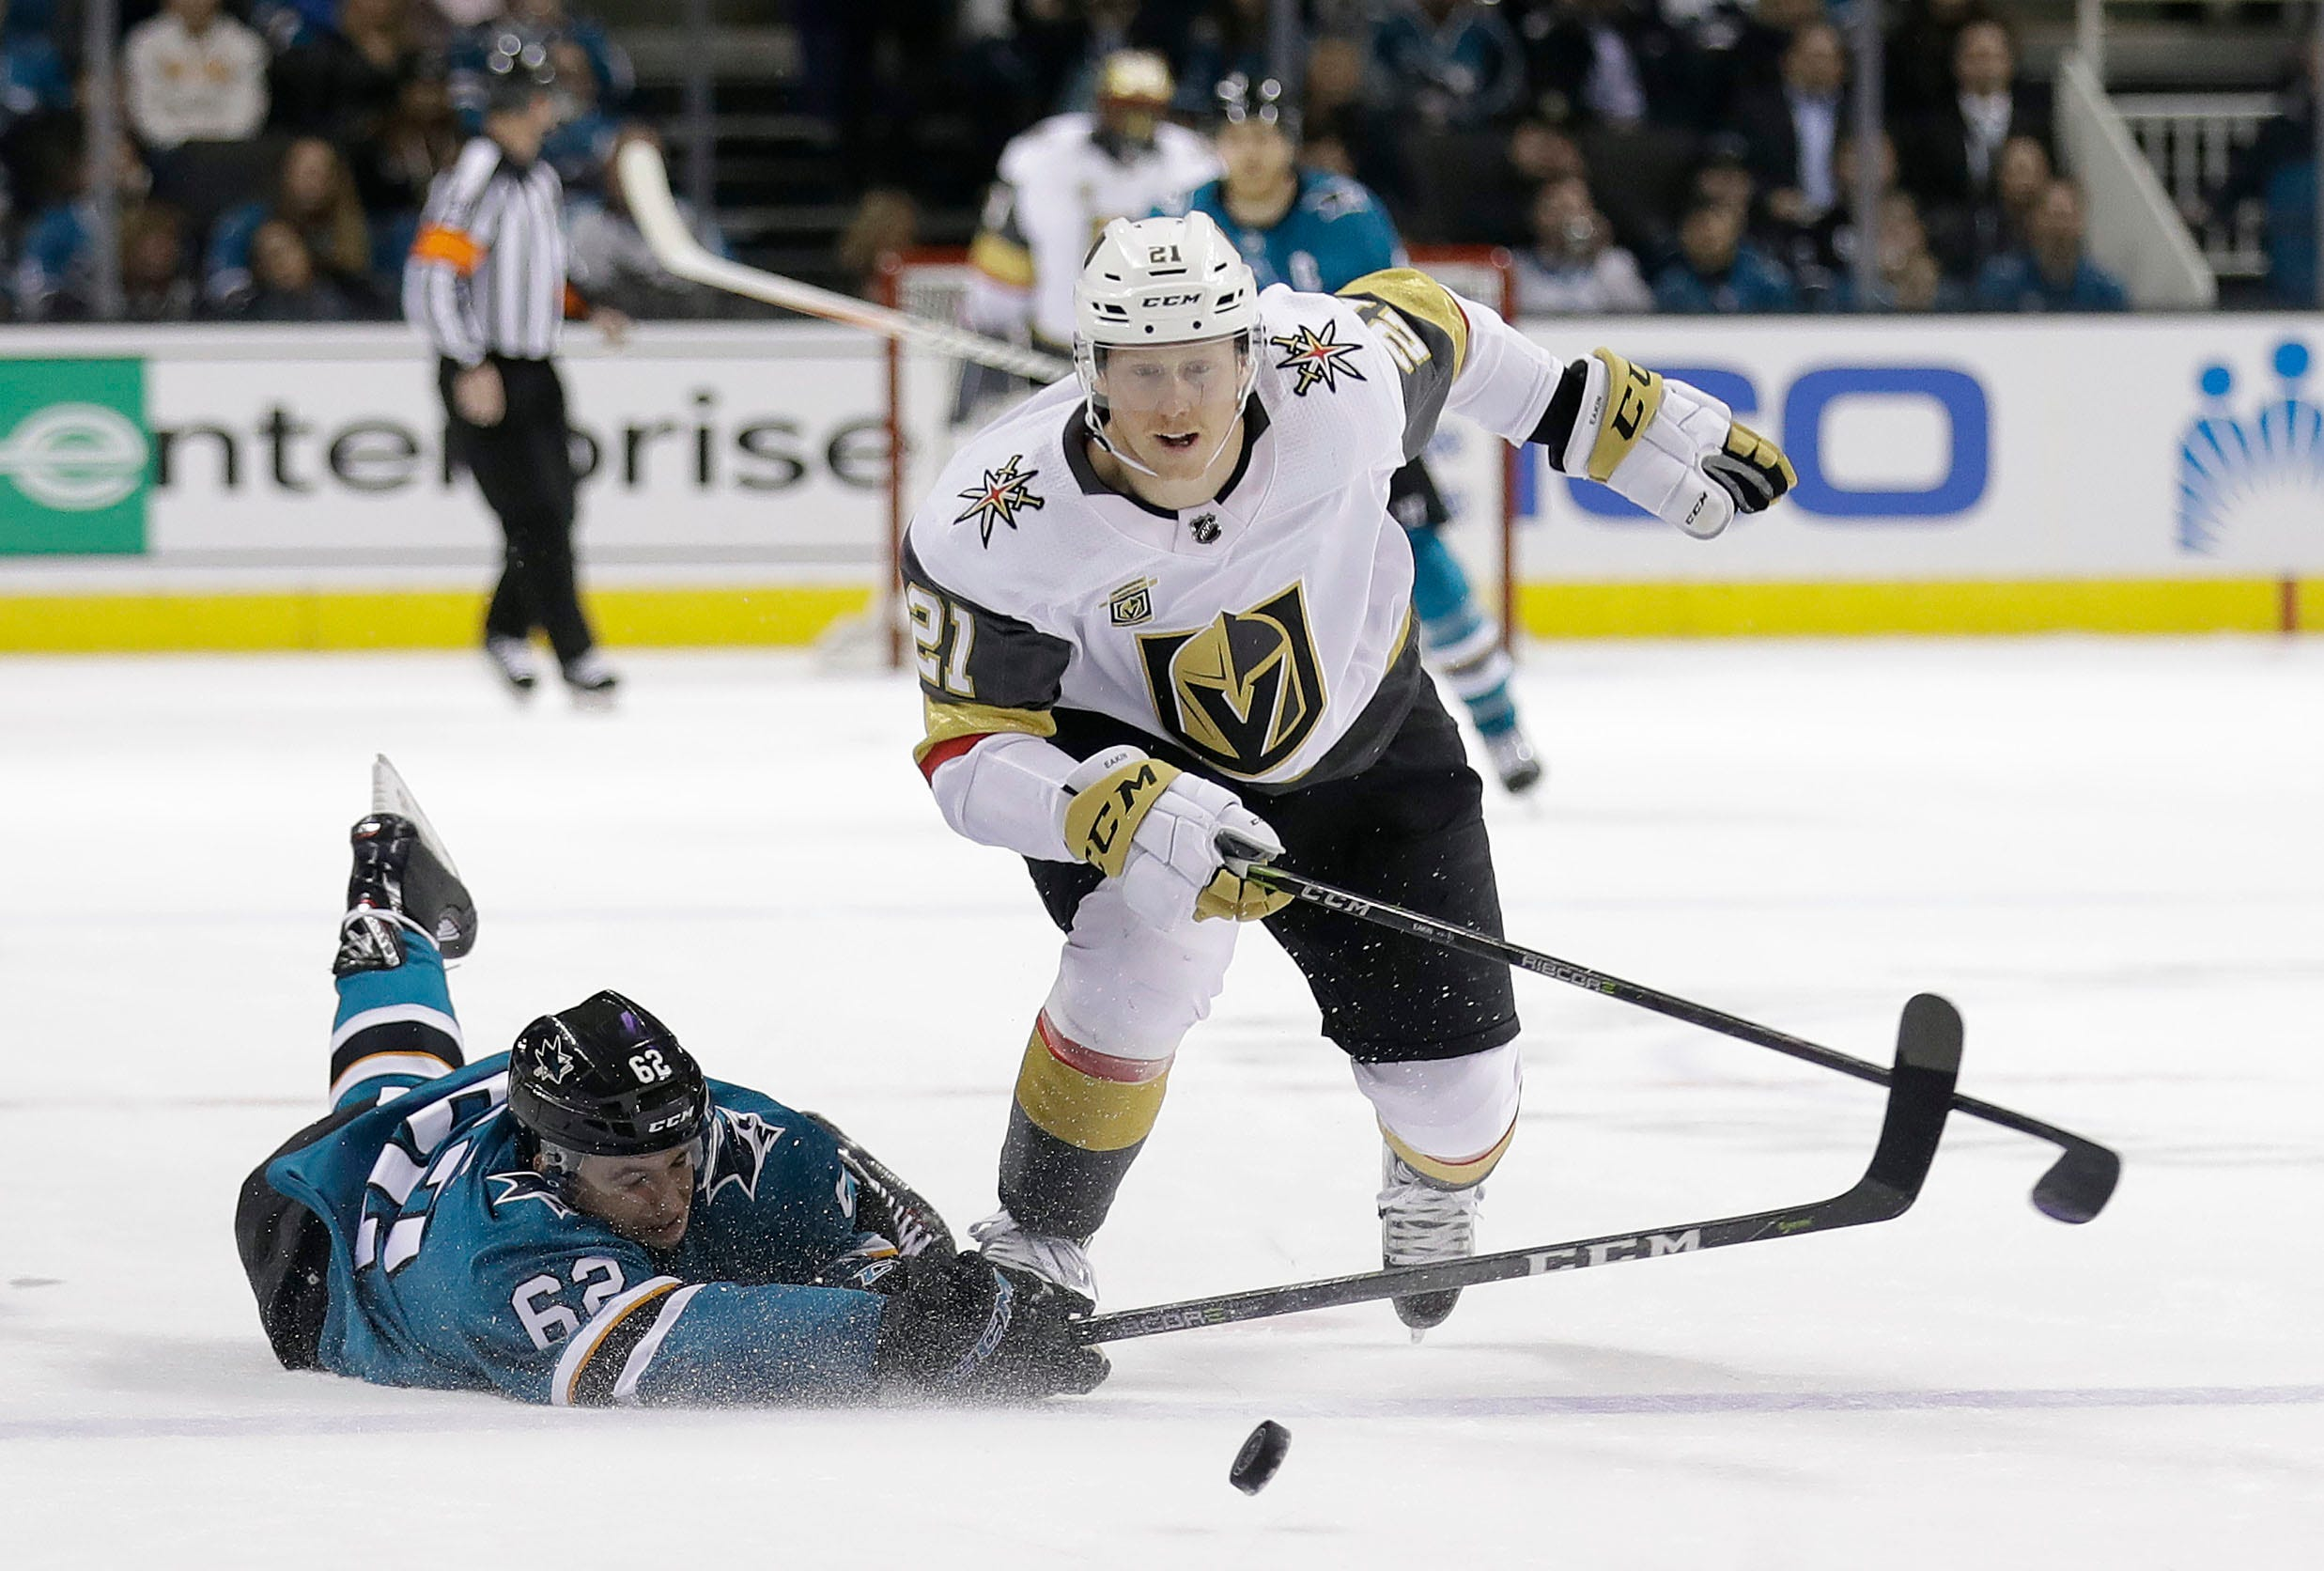 Couture's OT goal sends Sharks past Golden Knights 2-1